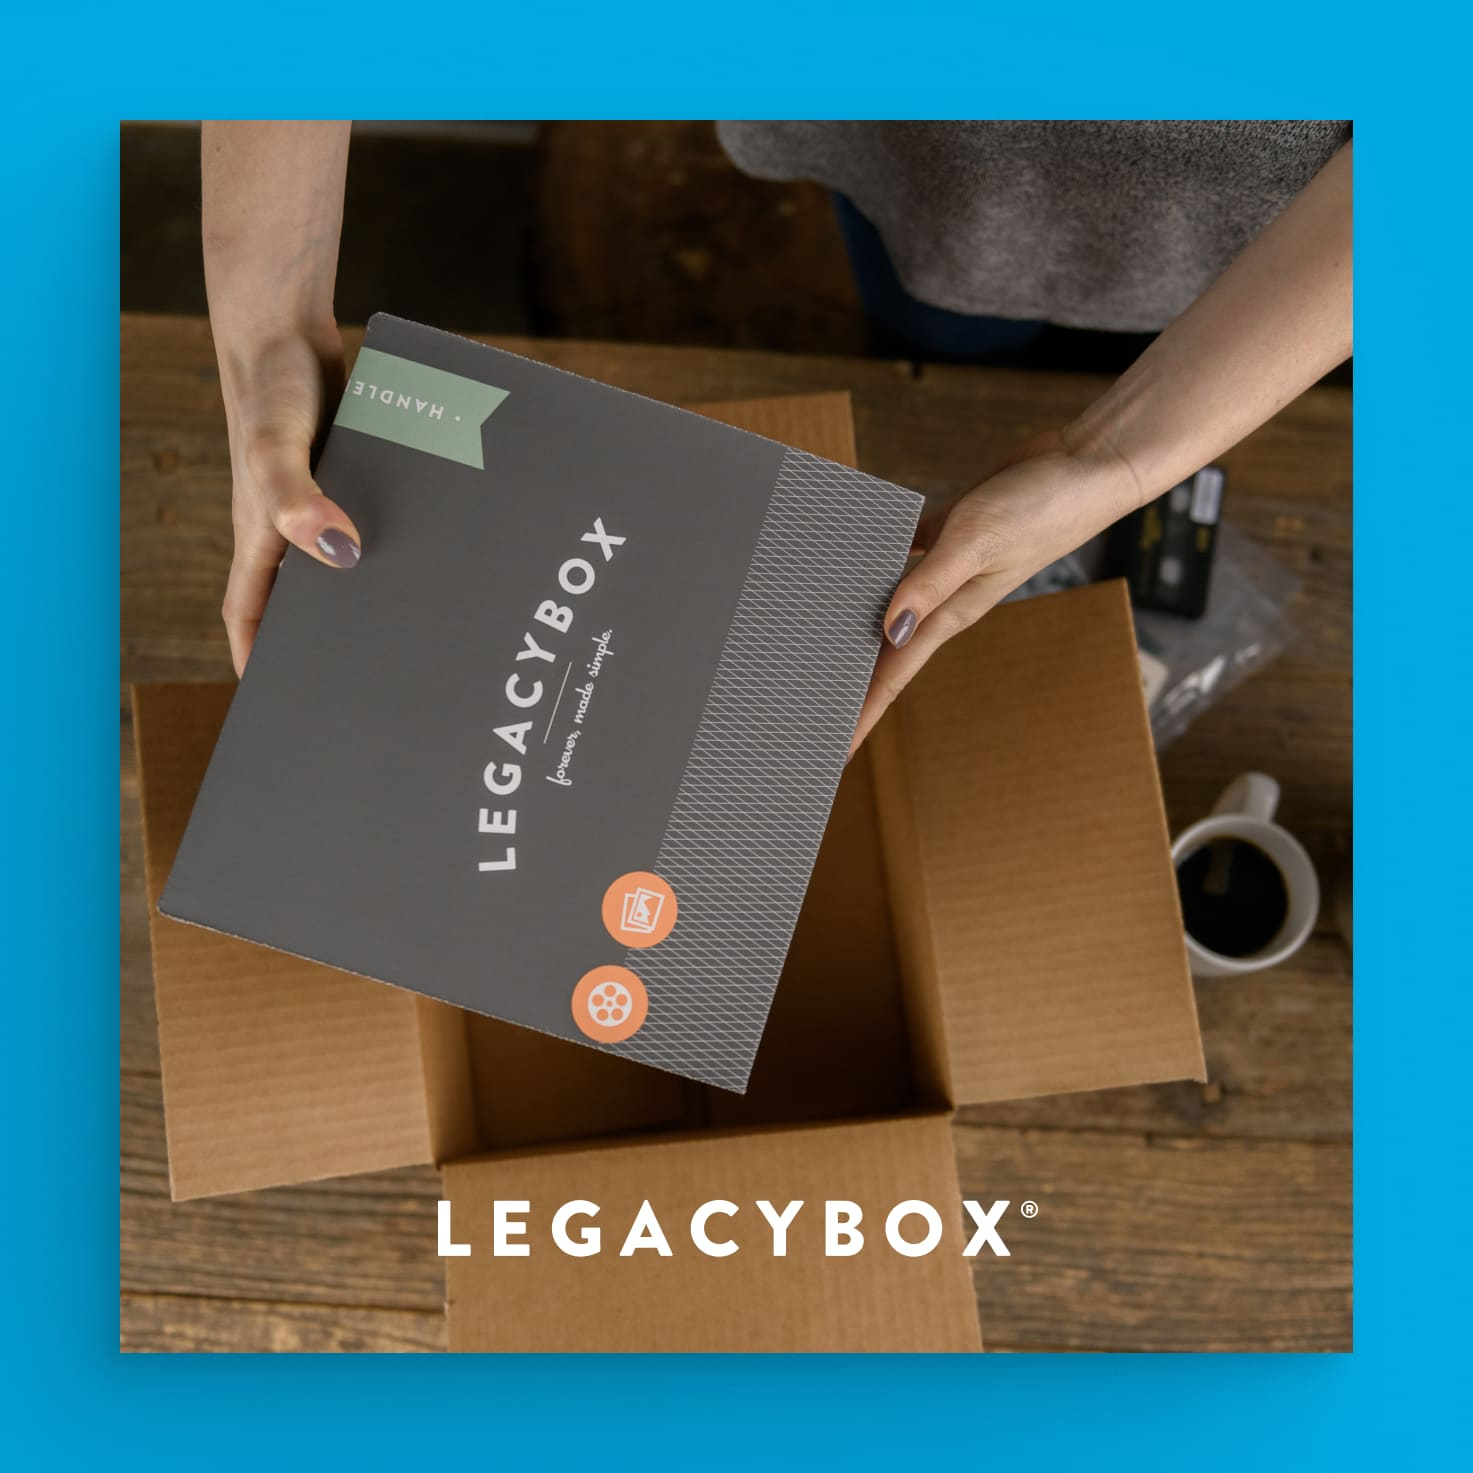 Product shot of a legacybox box.